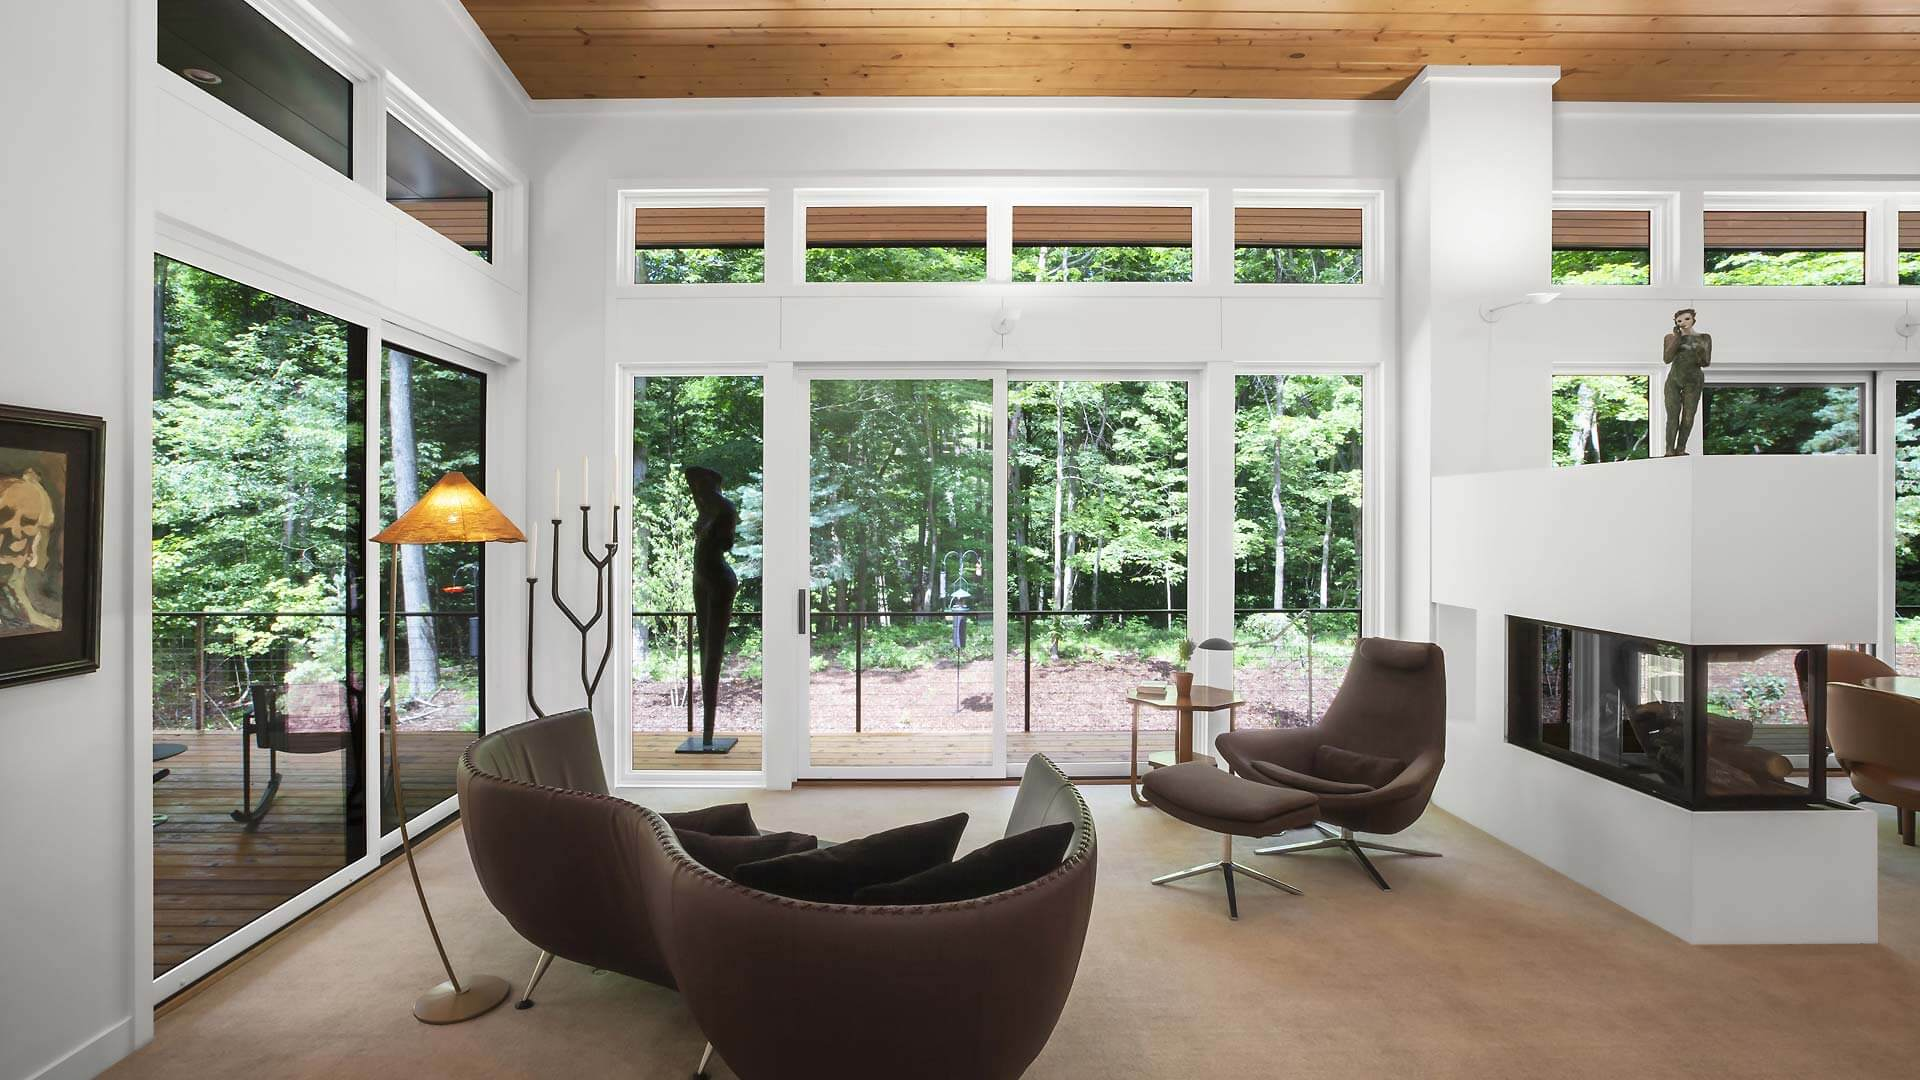 Open concept Living-Dining space optimizes natural light and panoramic views of Pier Cove Valley (photo view looking north) - Bridge House - Fenneville, Michigan - Lake Michigan